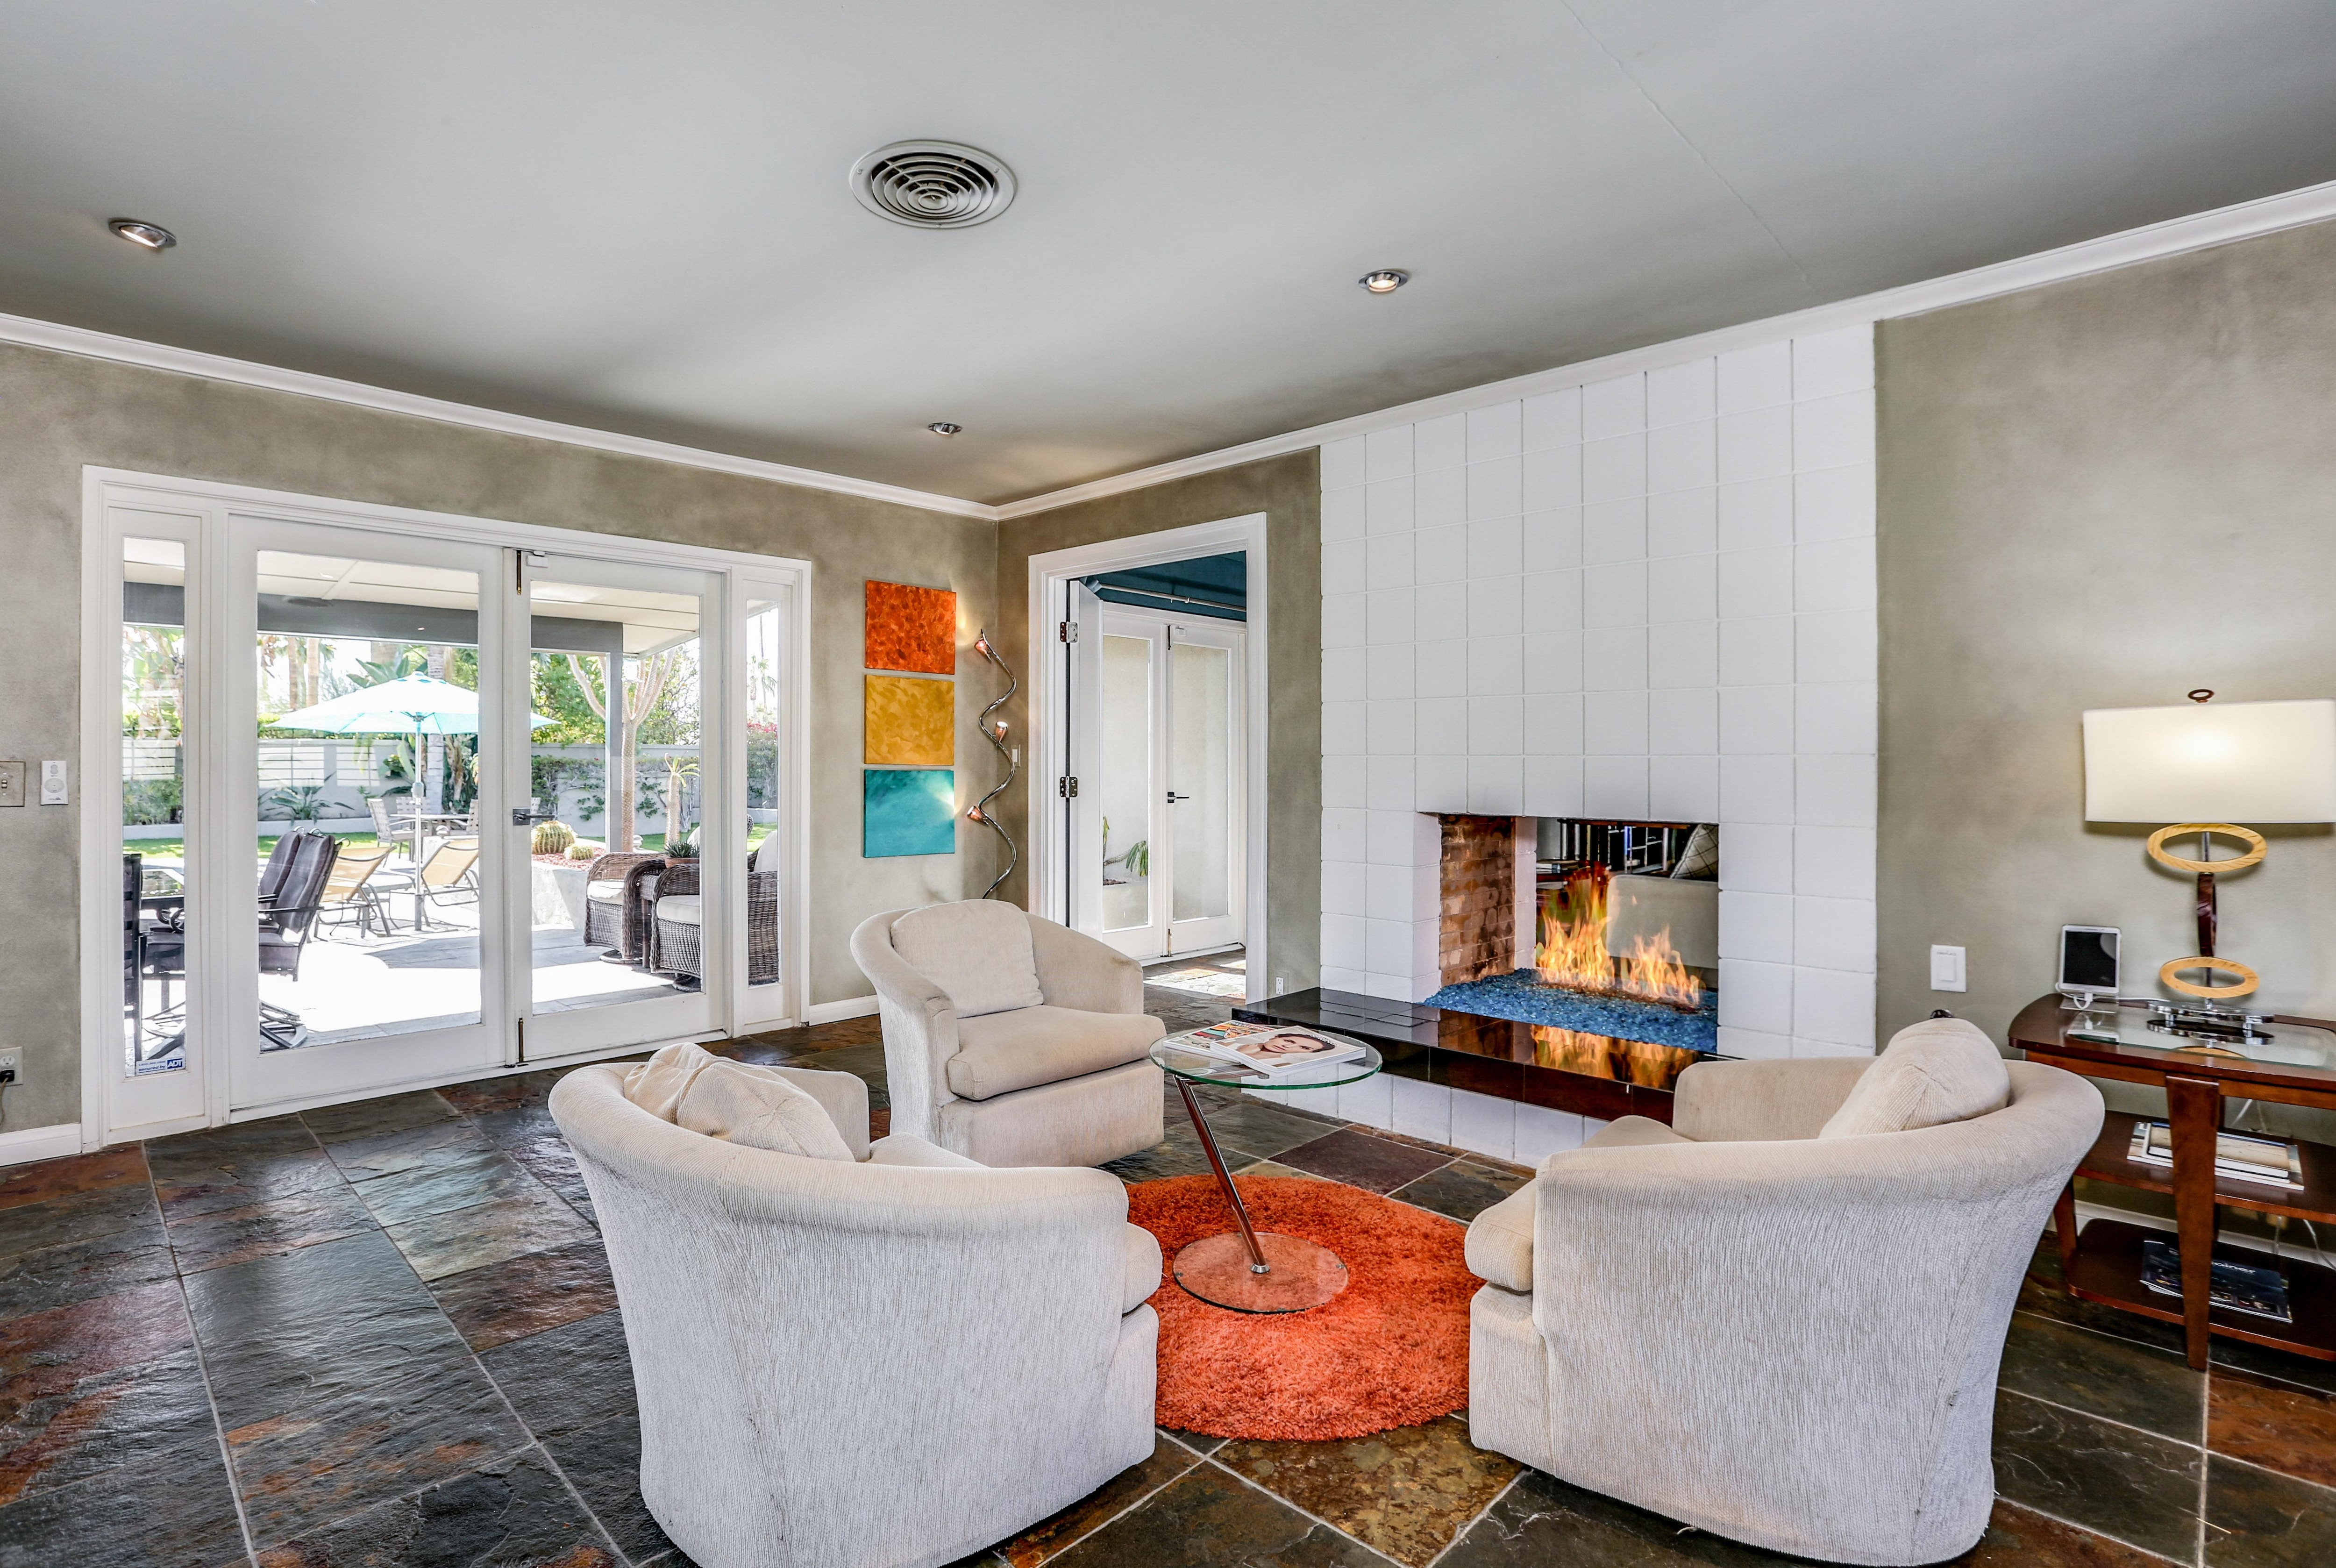 Relax on 3 comfy armchairs next to the flickering fireplace.